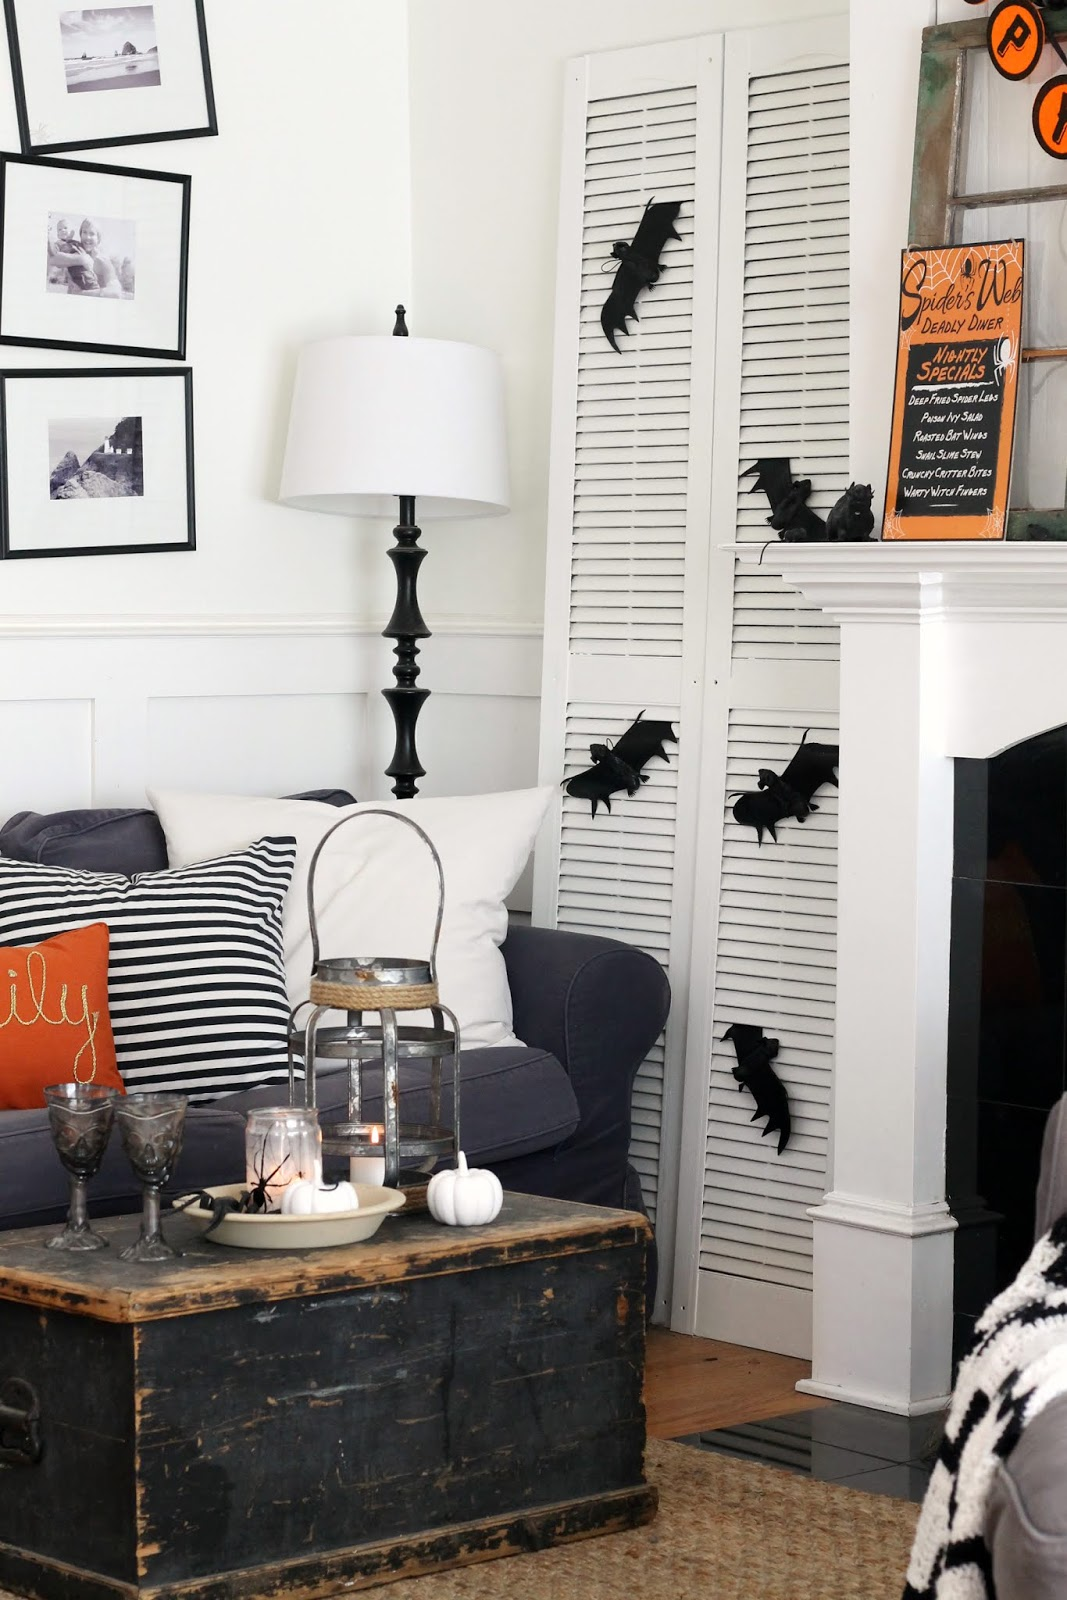 When It Comes To Decorating For Halloween, I Typically Like To Focus On  Decorating Just One Area In Our Home, Rather Than Have Decorations  Scattered ...